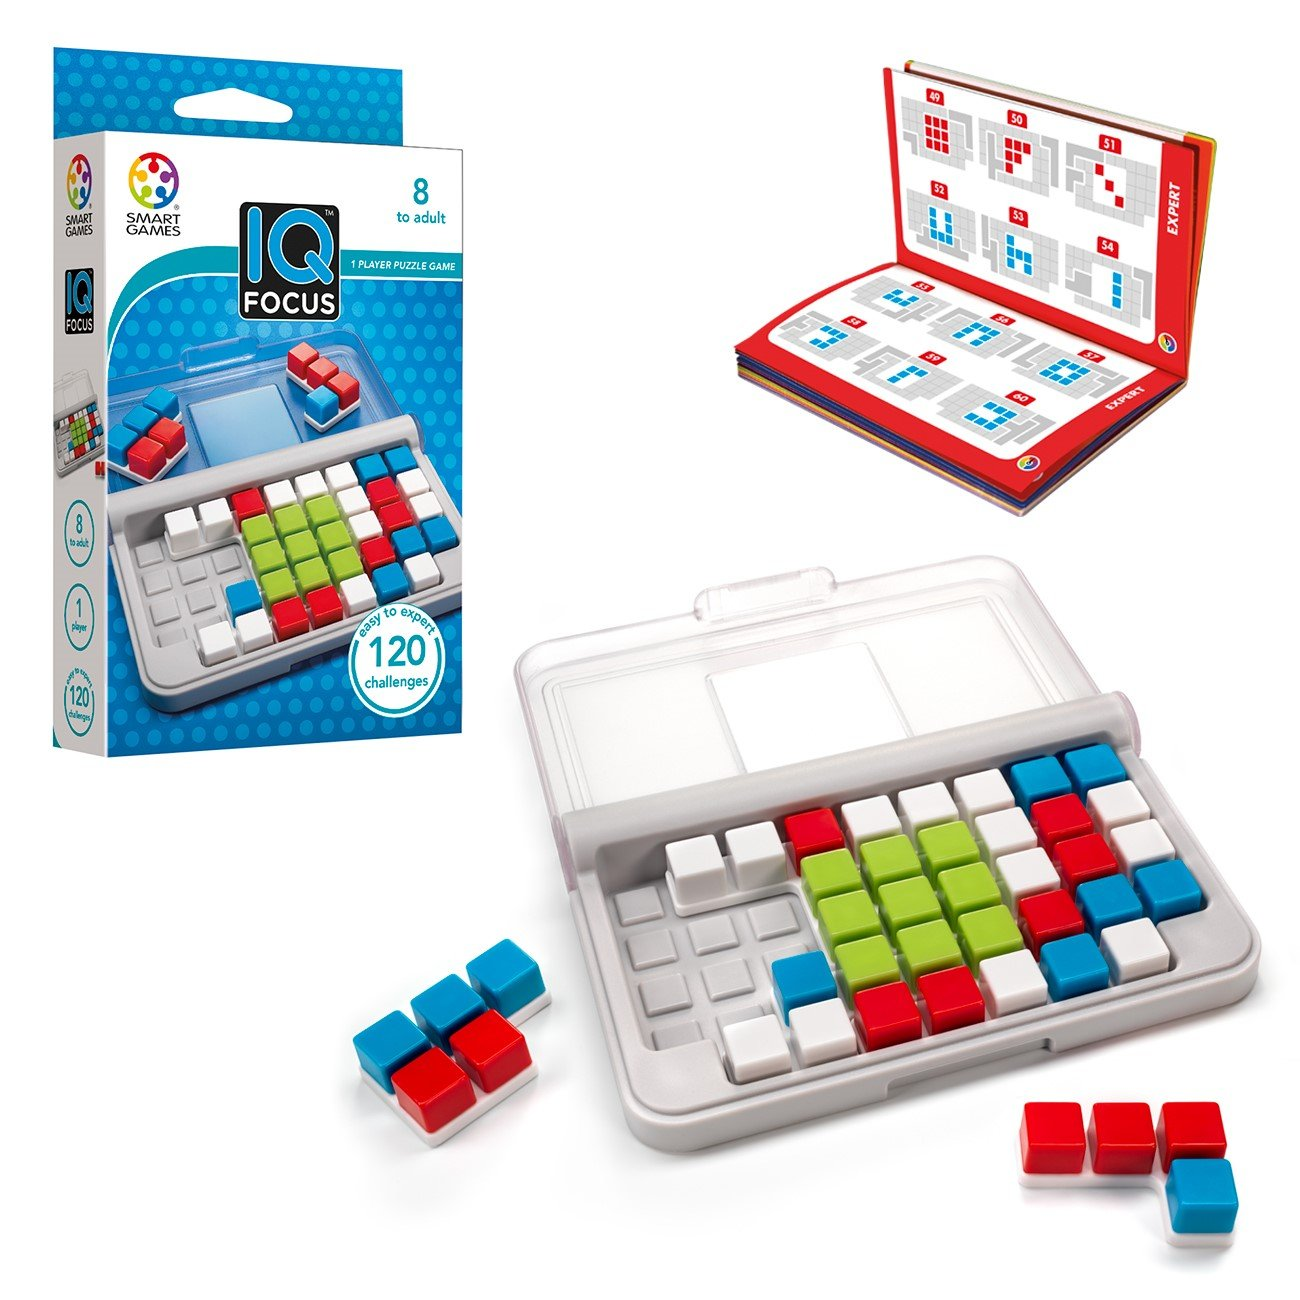 Smartgames Iq Focus Skill Building Travel Game For Ages 8